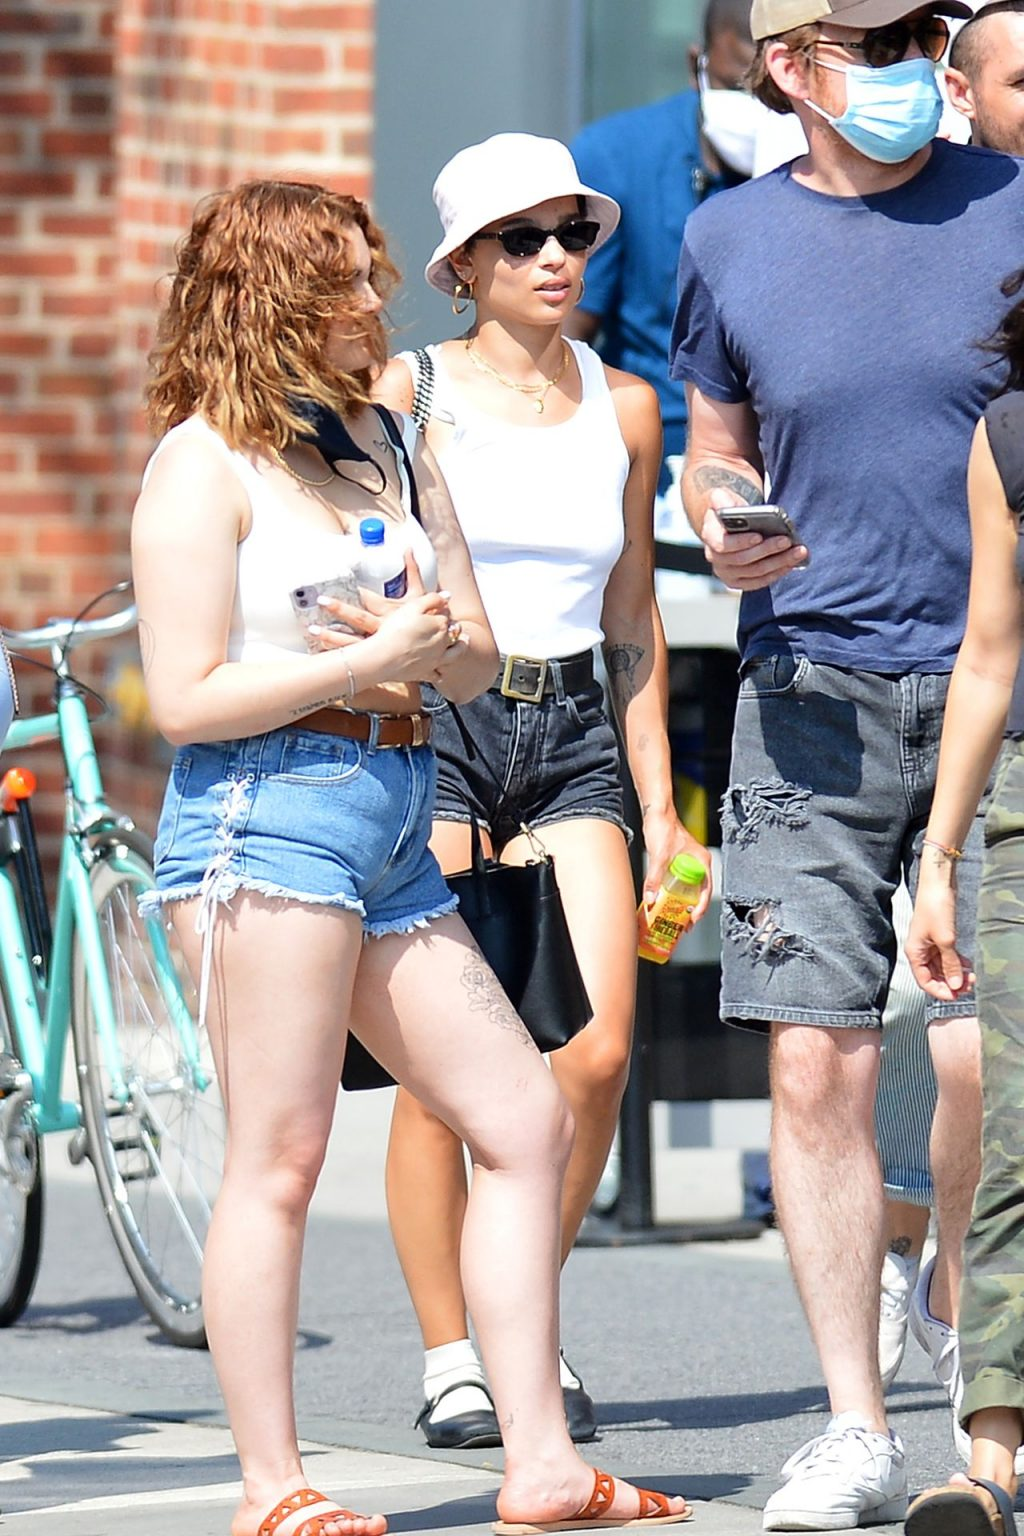 Zoe Kravitz is Pictured Out With a Group of Friends in NYC (11 Photos)